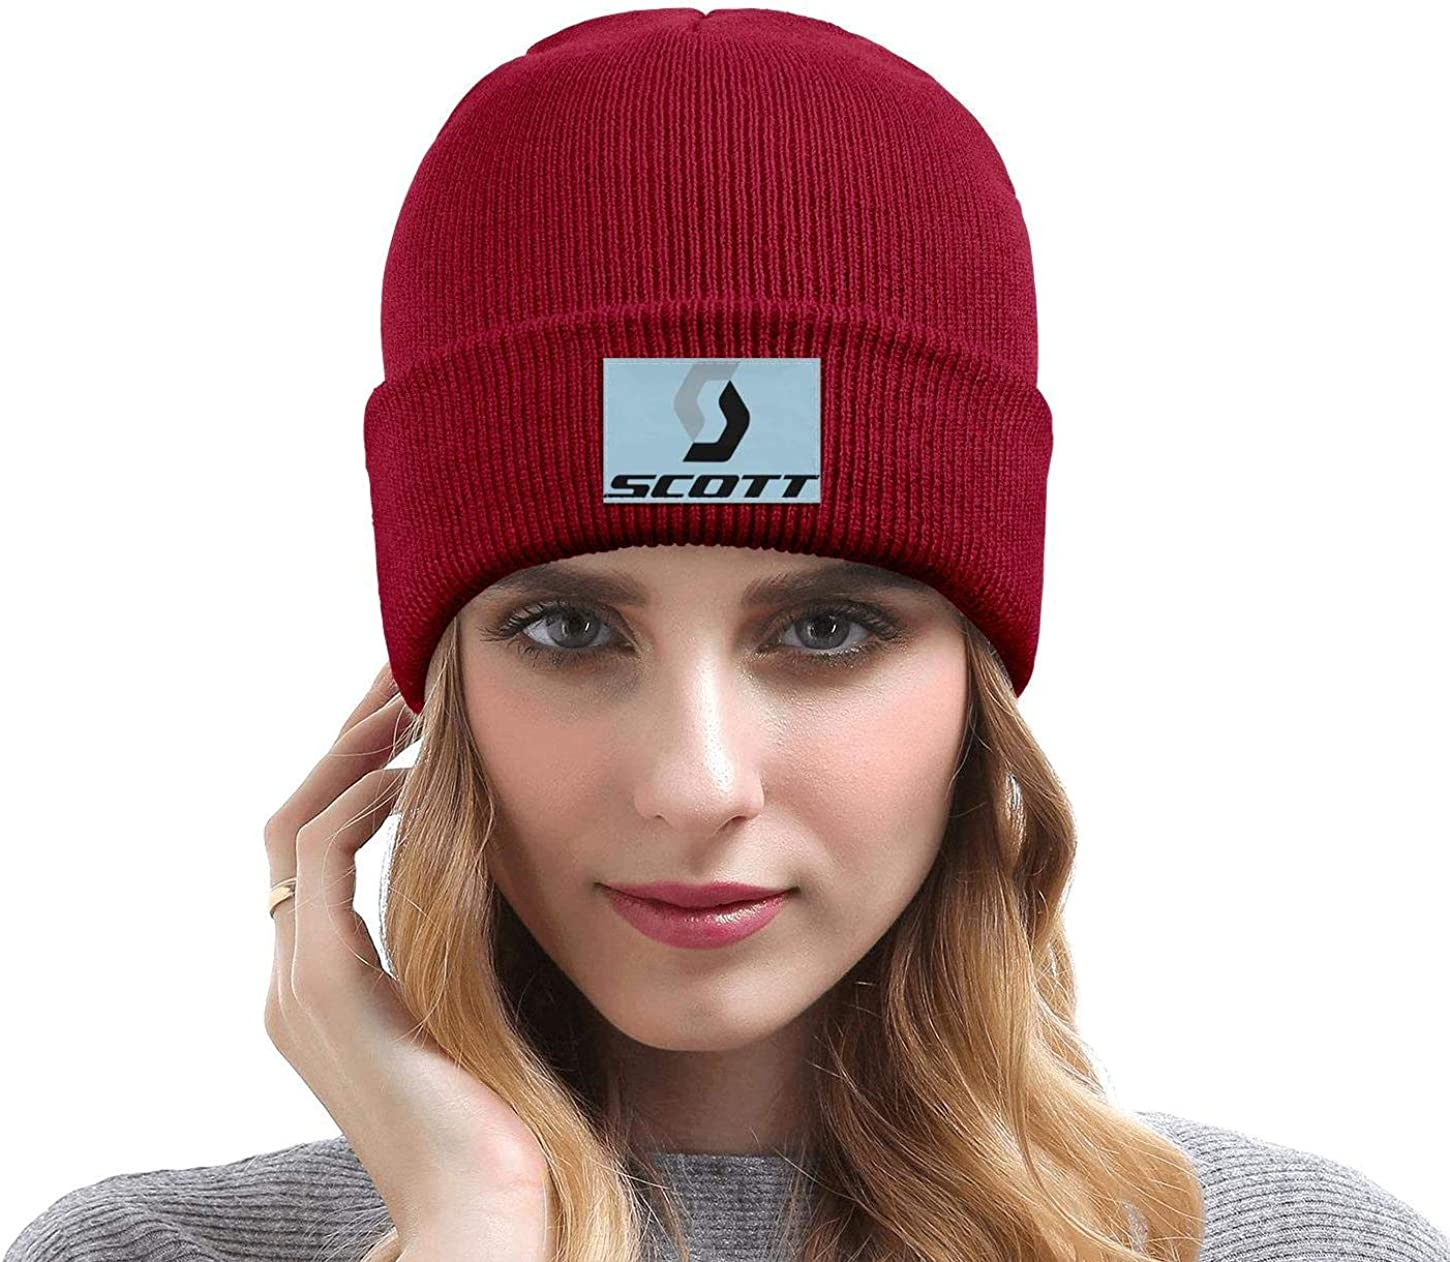 DXQIANG Sc-OTT-Sports Men Women Knit Beanies Hat Warm Skull Knit Cap